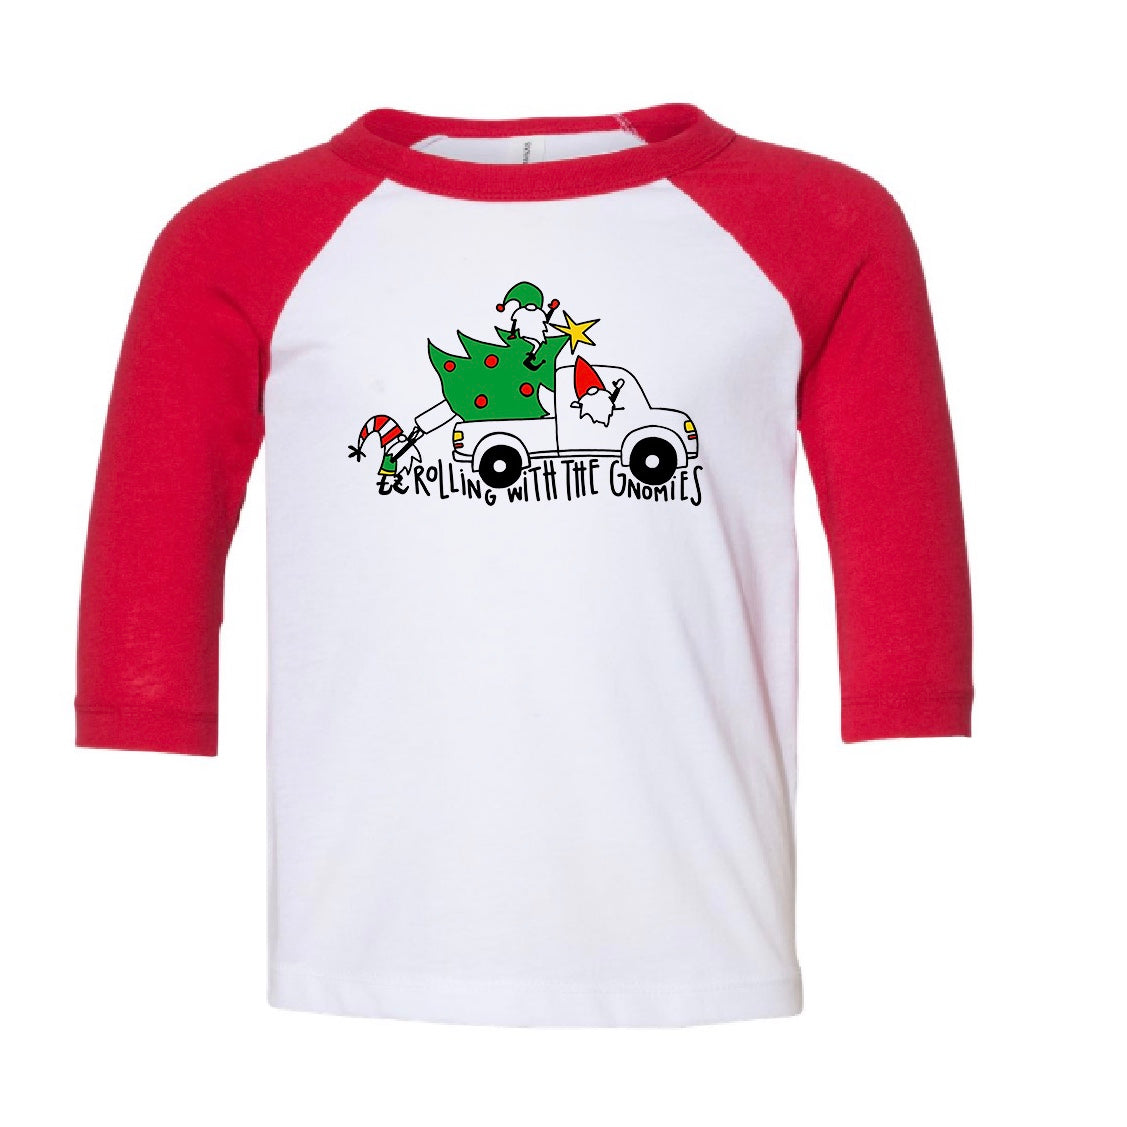 """Rolling with the Gnomies"" baseball style tee"